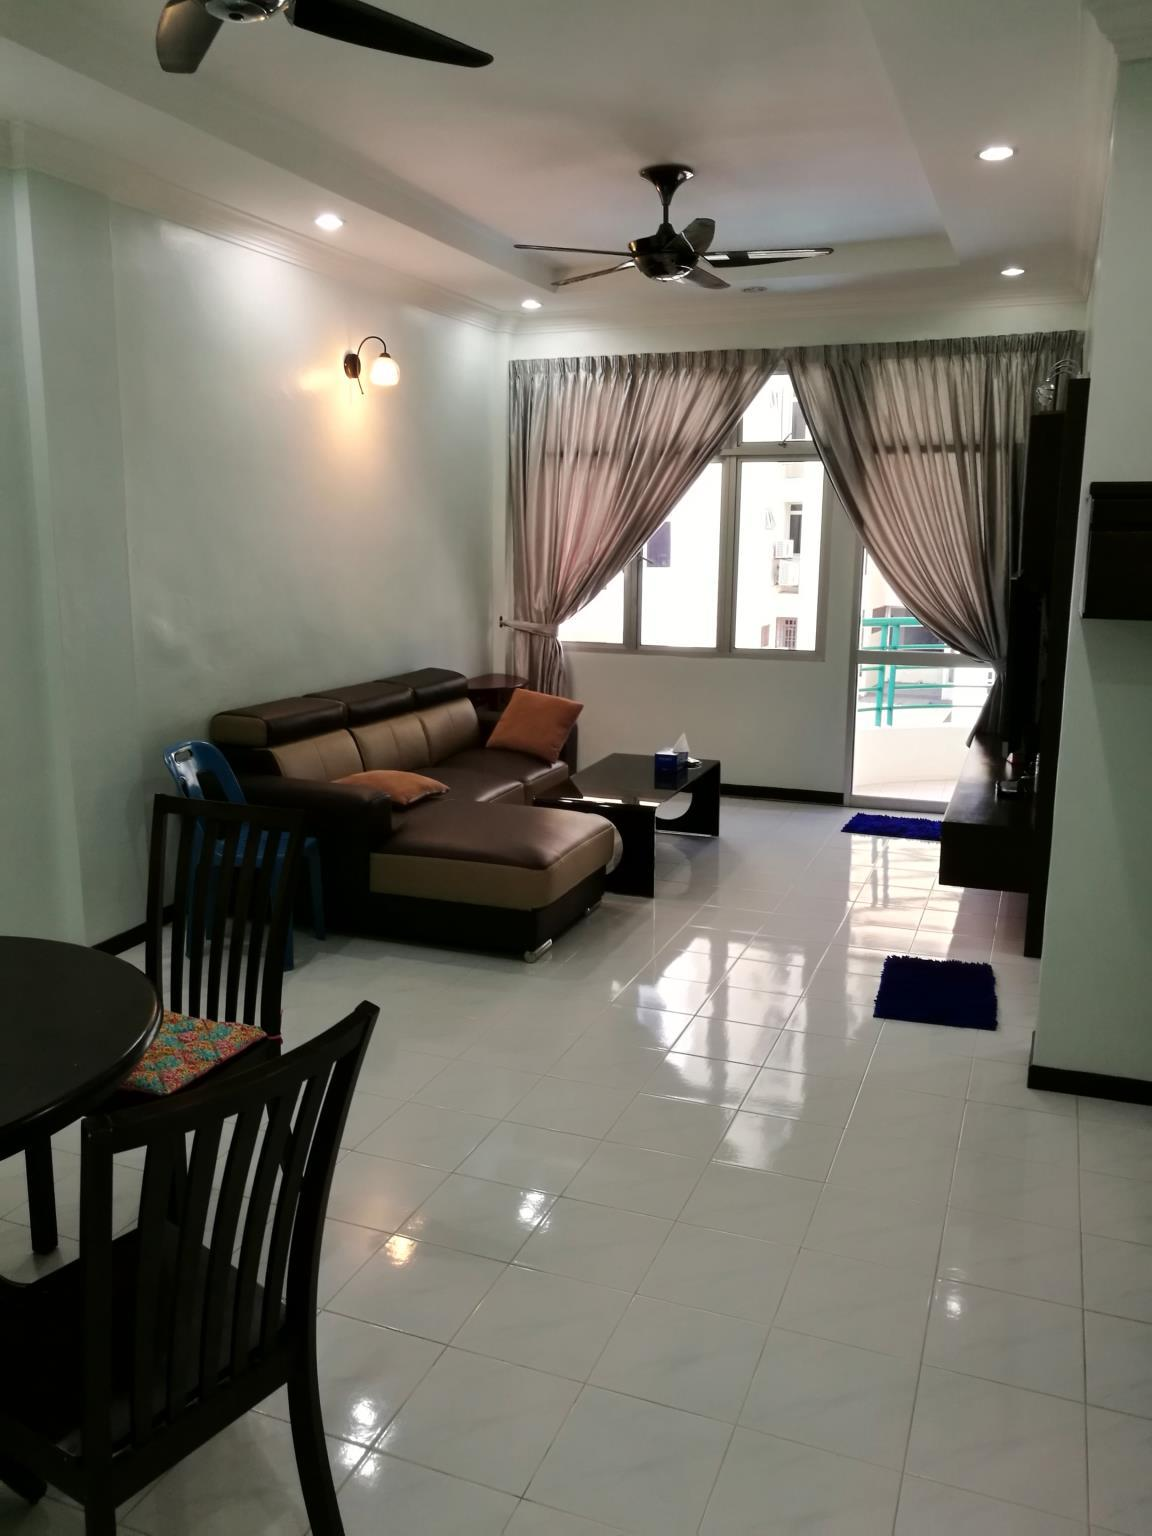 Condo by the hill, Pulau Penang